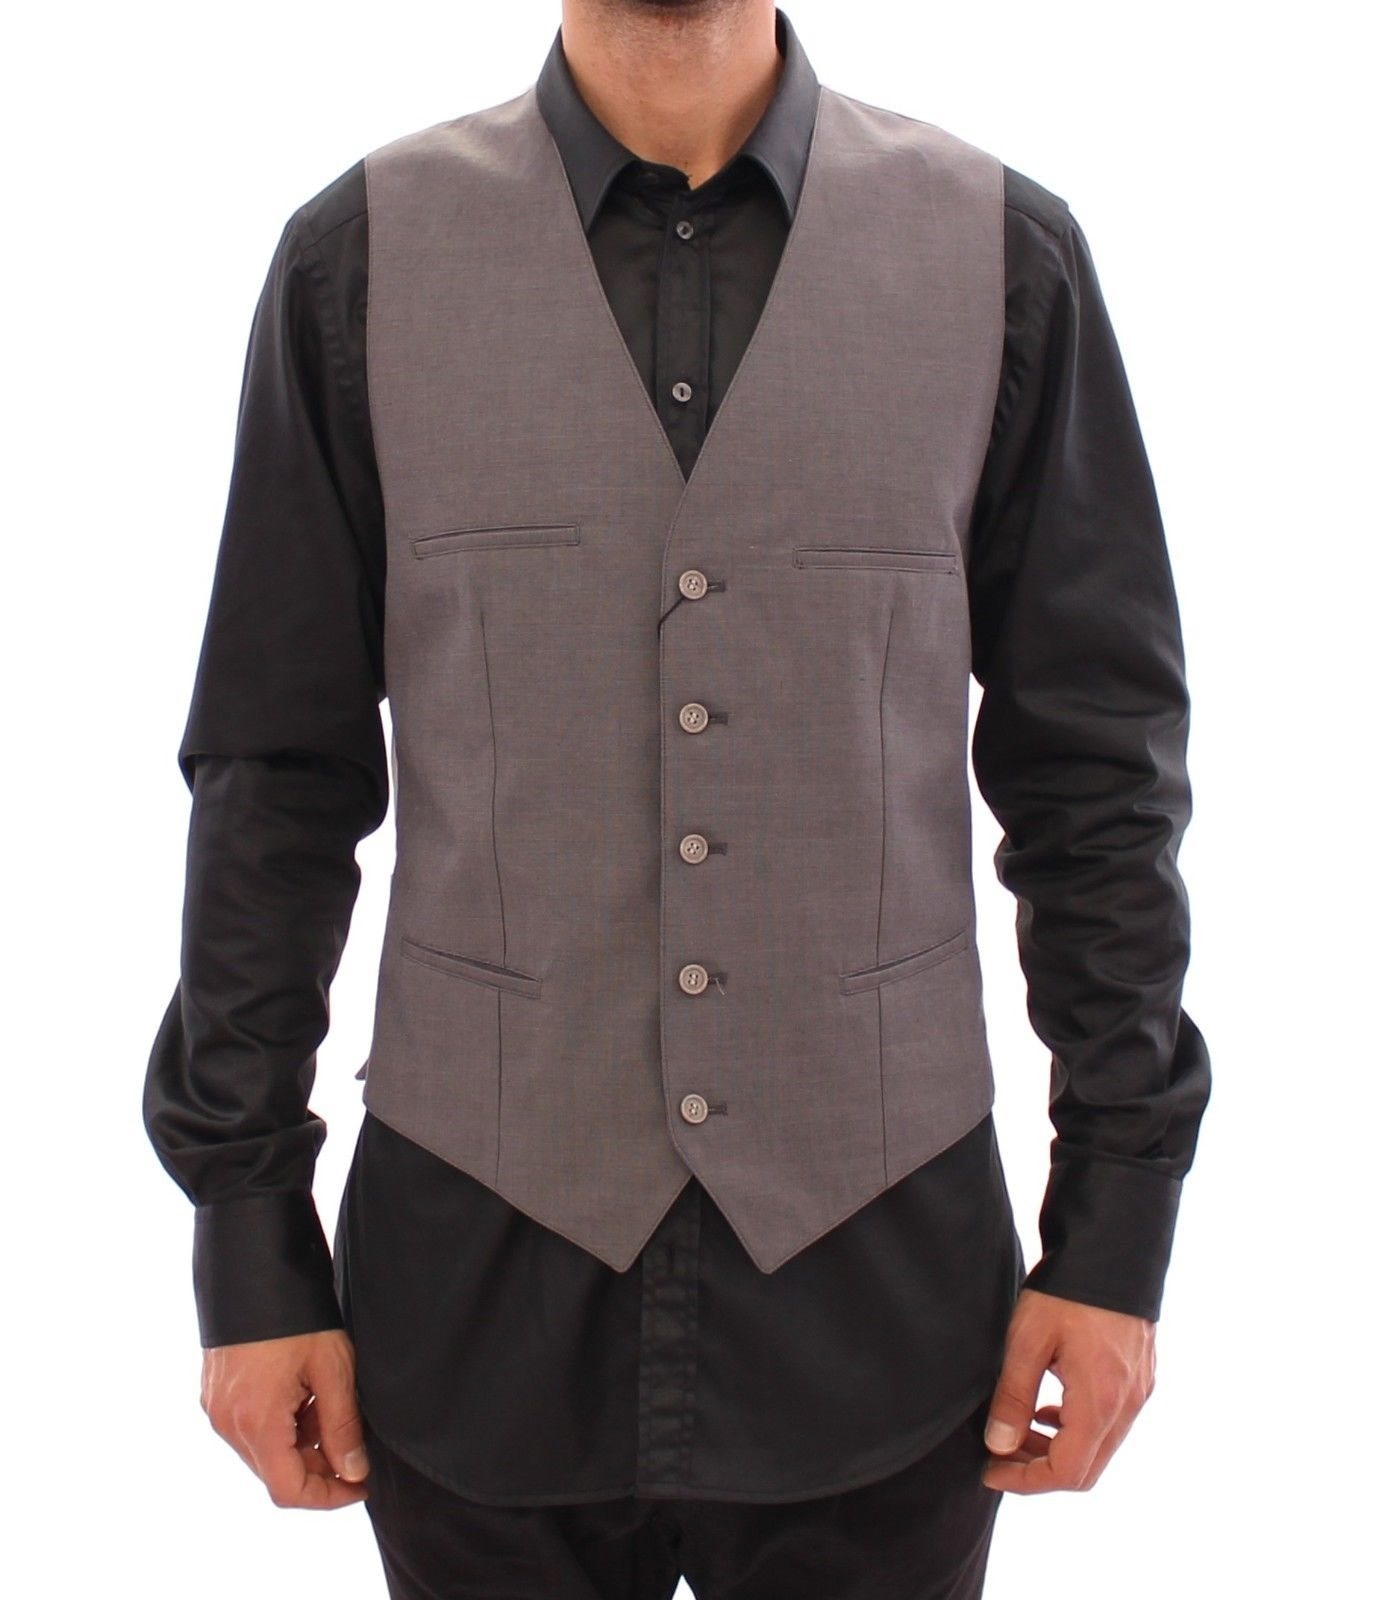 Dolce & Gabbana - Gray Cotton Slim Fit Button Front Dress Vest